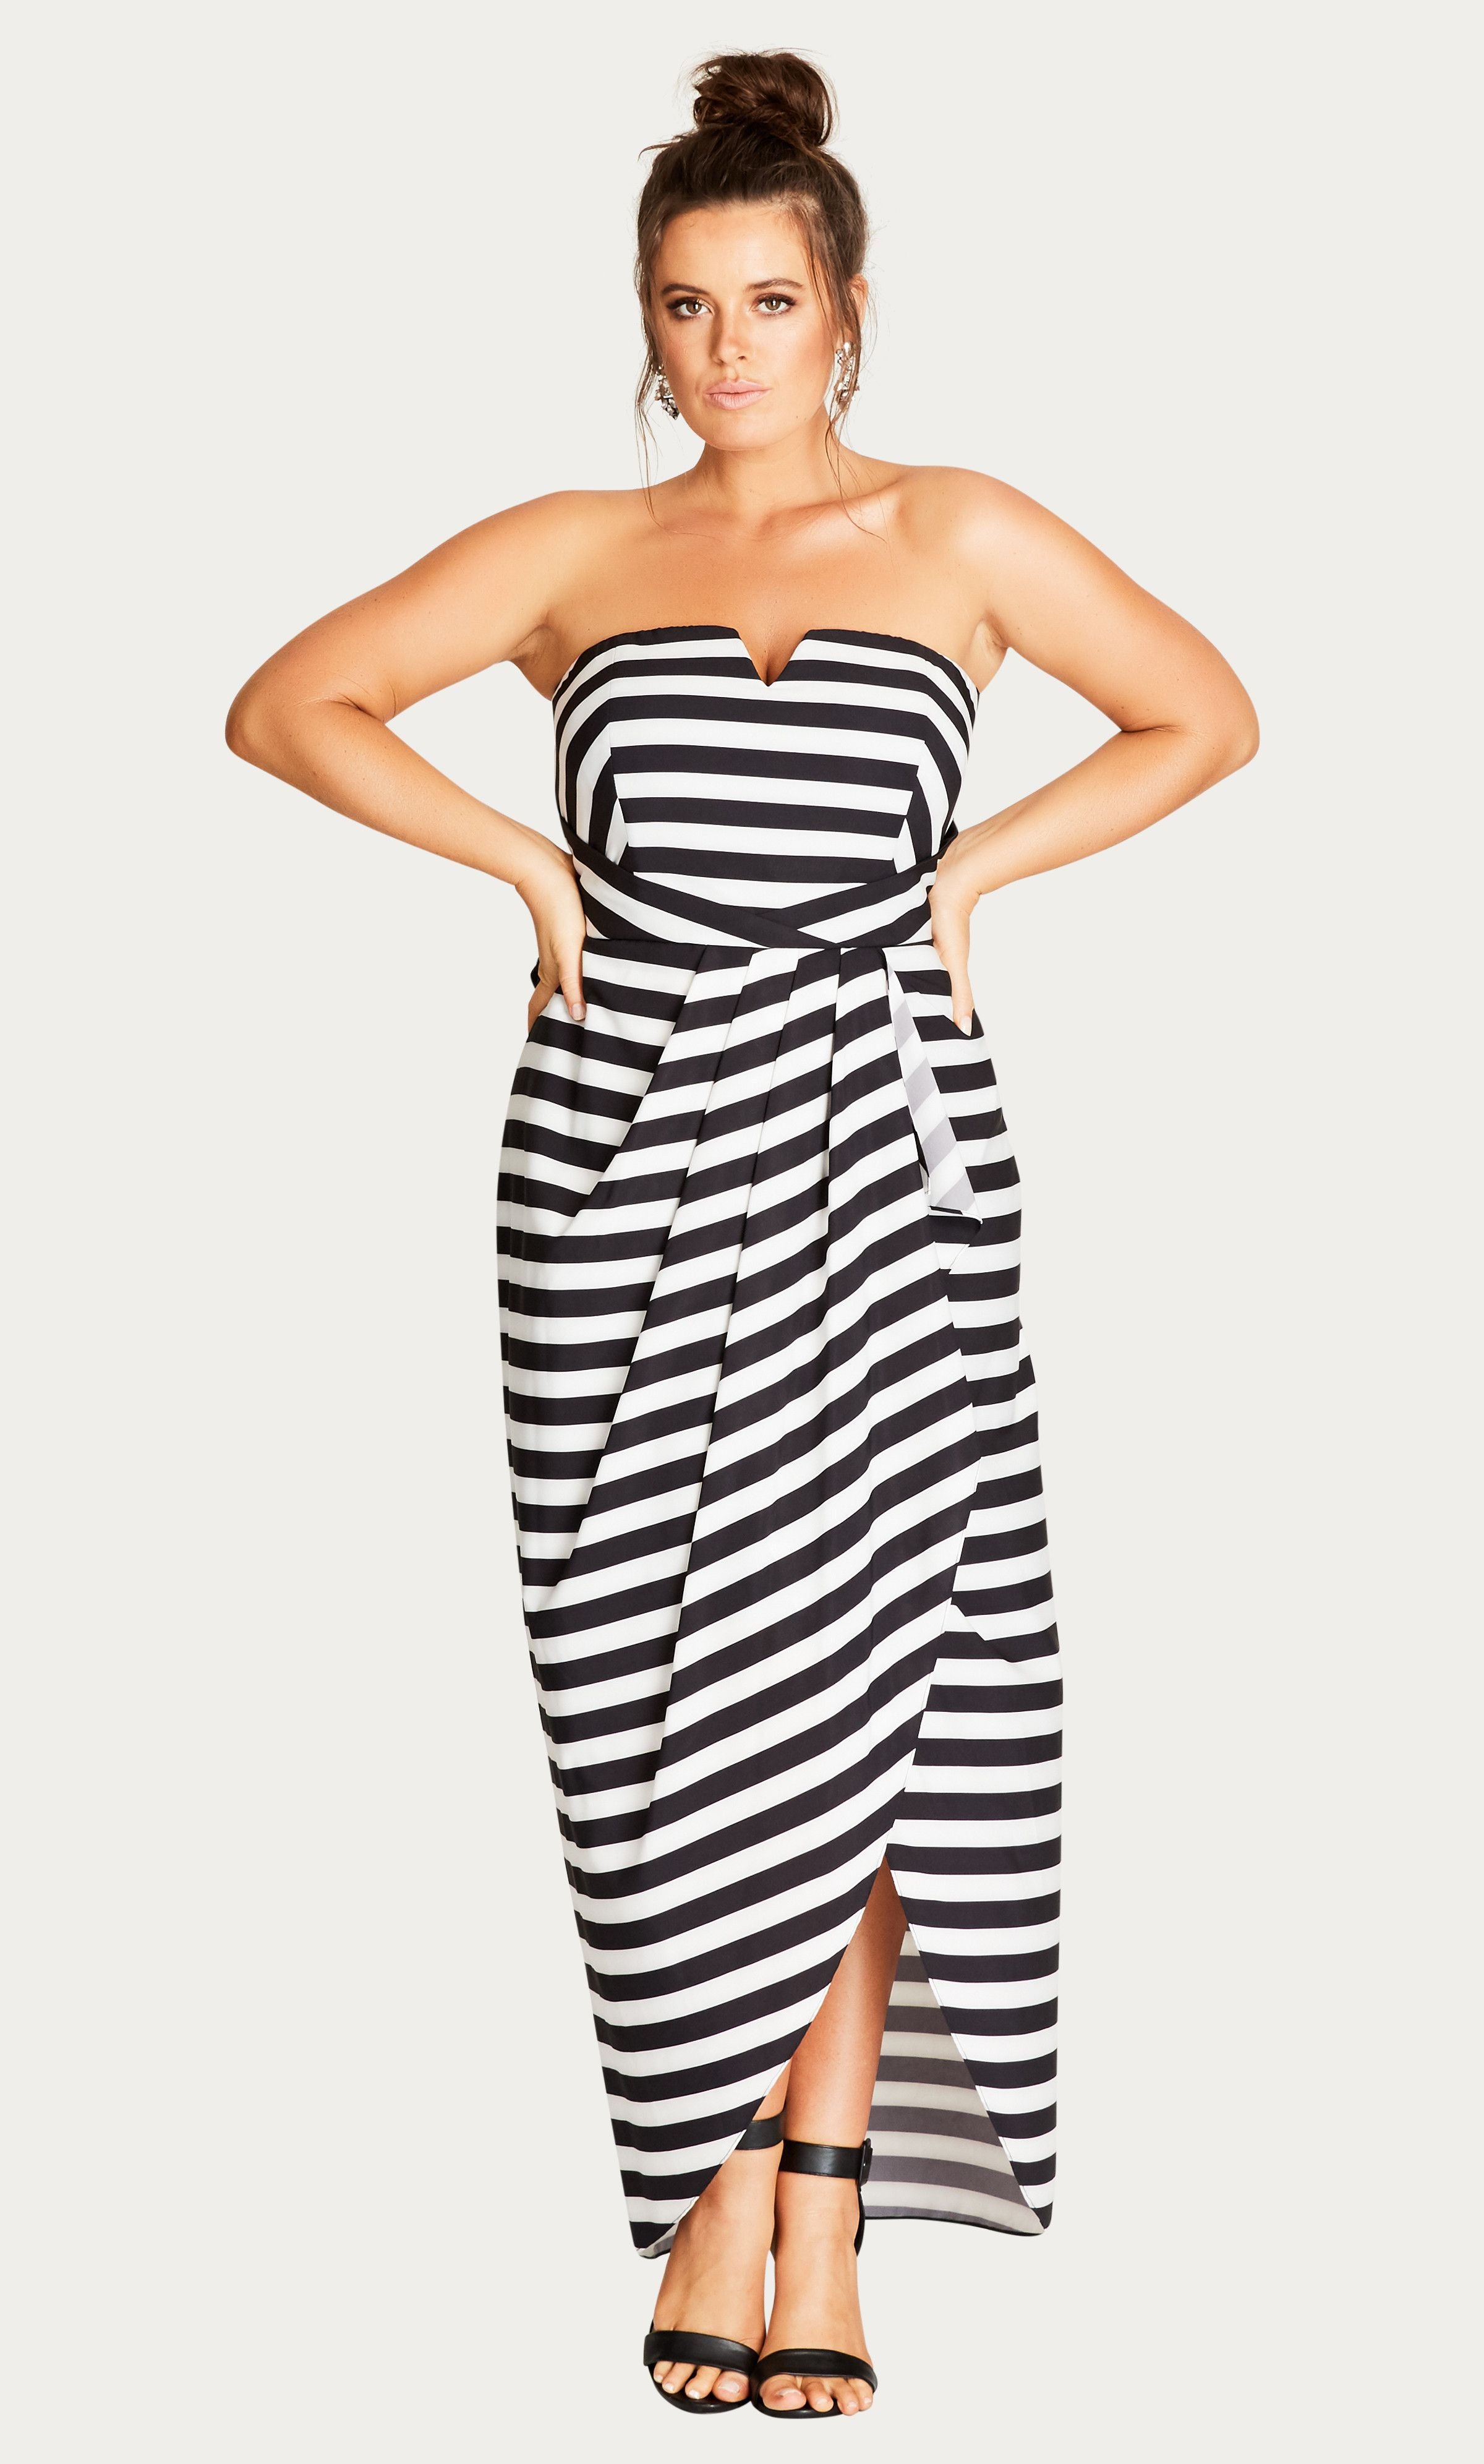 956fcbf7bb4 On the hunt for the perfect plus size maxi dress for the spring and summer  seasons  Well